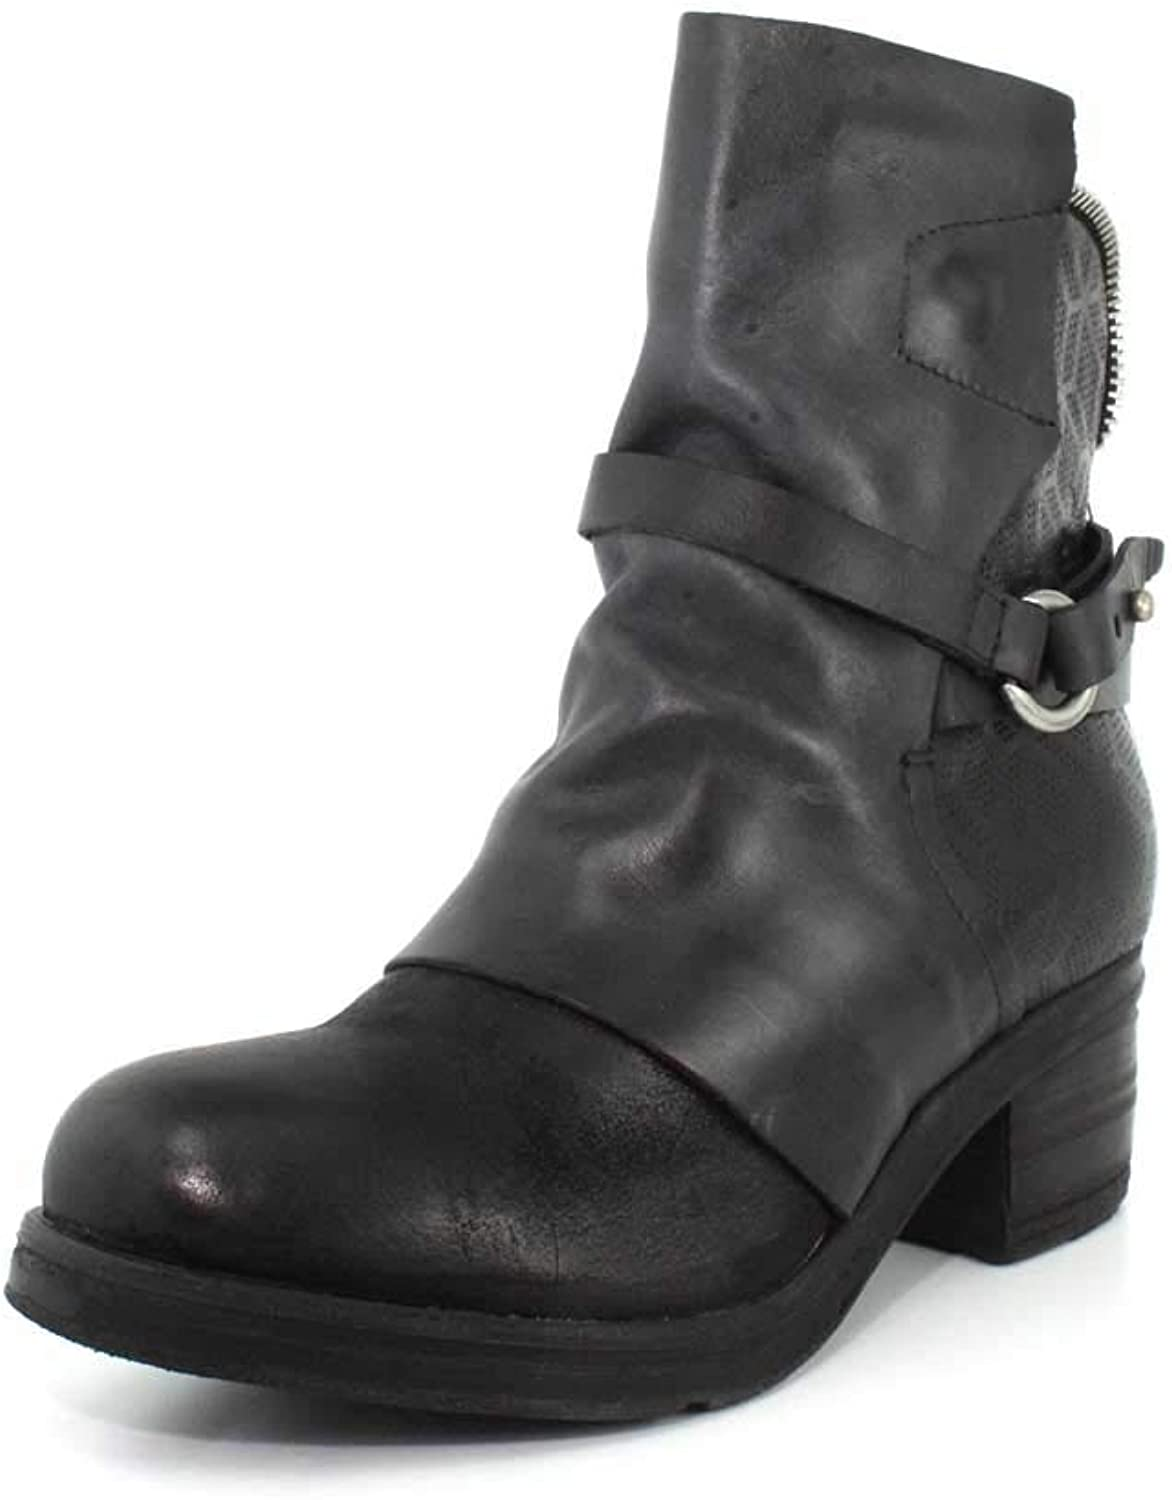 Miz Mooz Womens Salma Leather Cap Toe Mid-Calf Fashion Boots